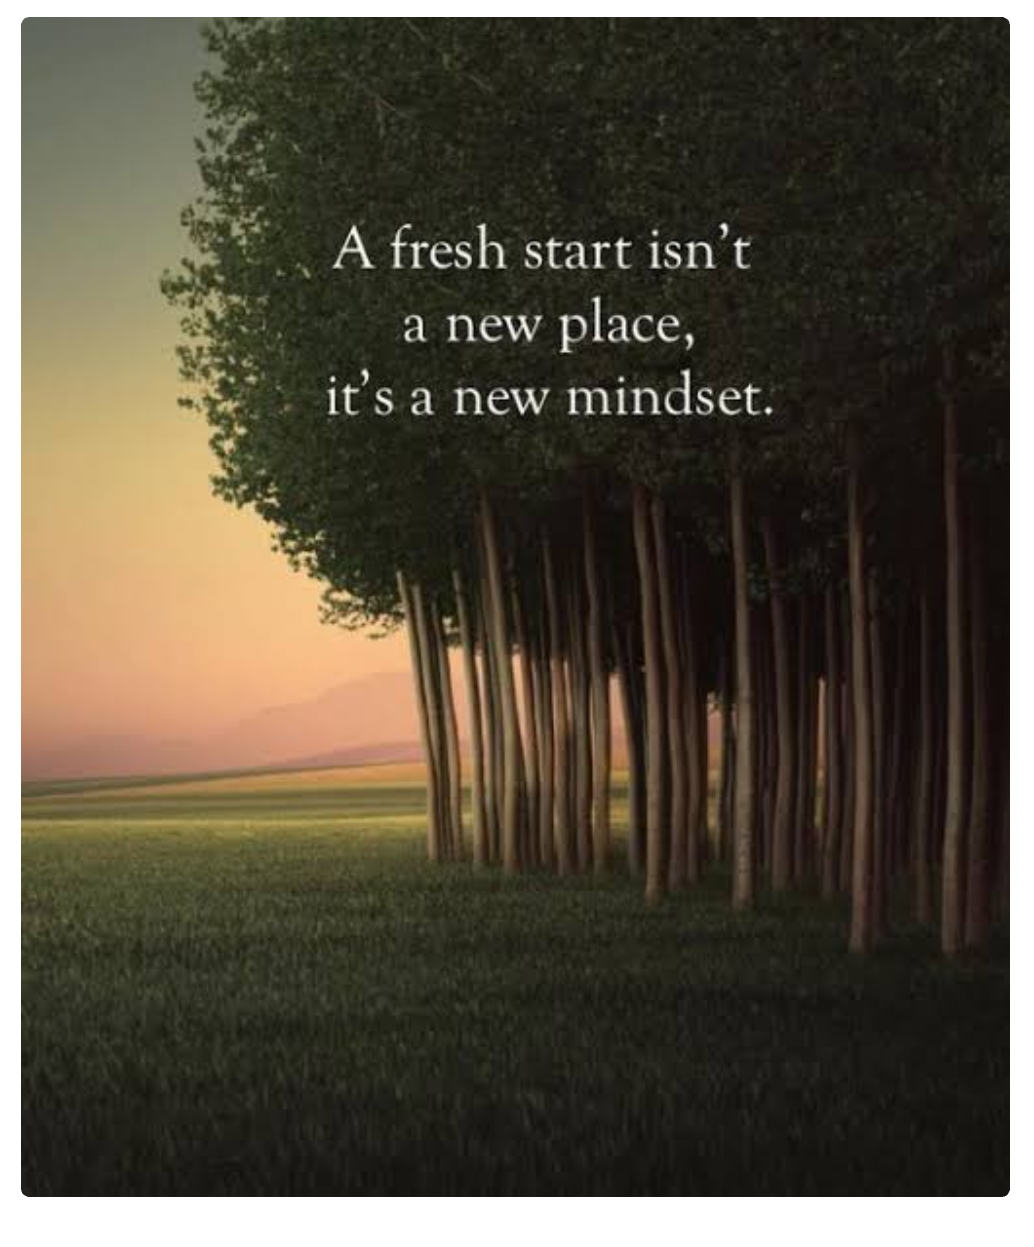 [Image] Remember guys ,it's totally okay to Have a fresh start , it's not the end of the world if you do so .